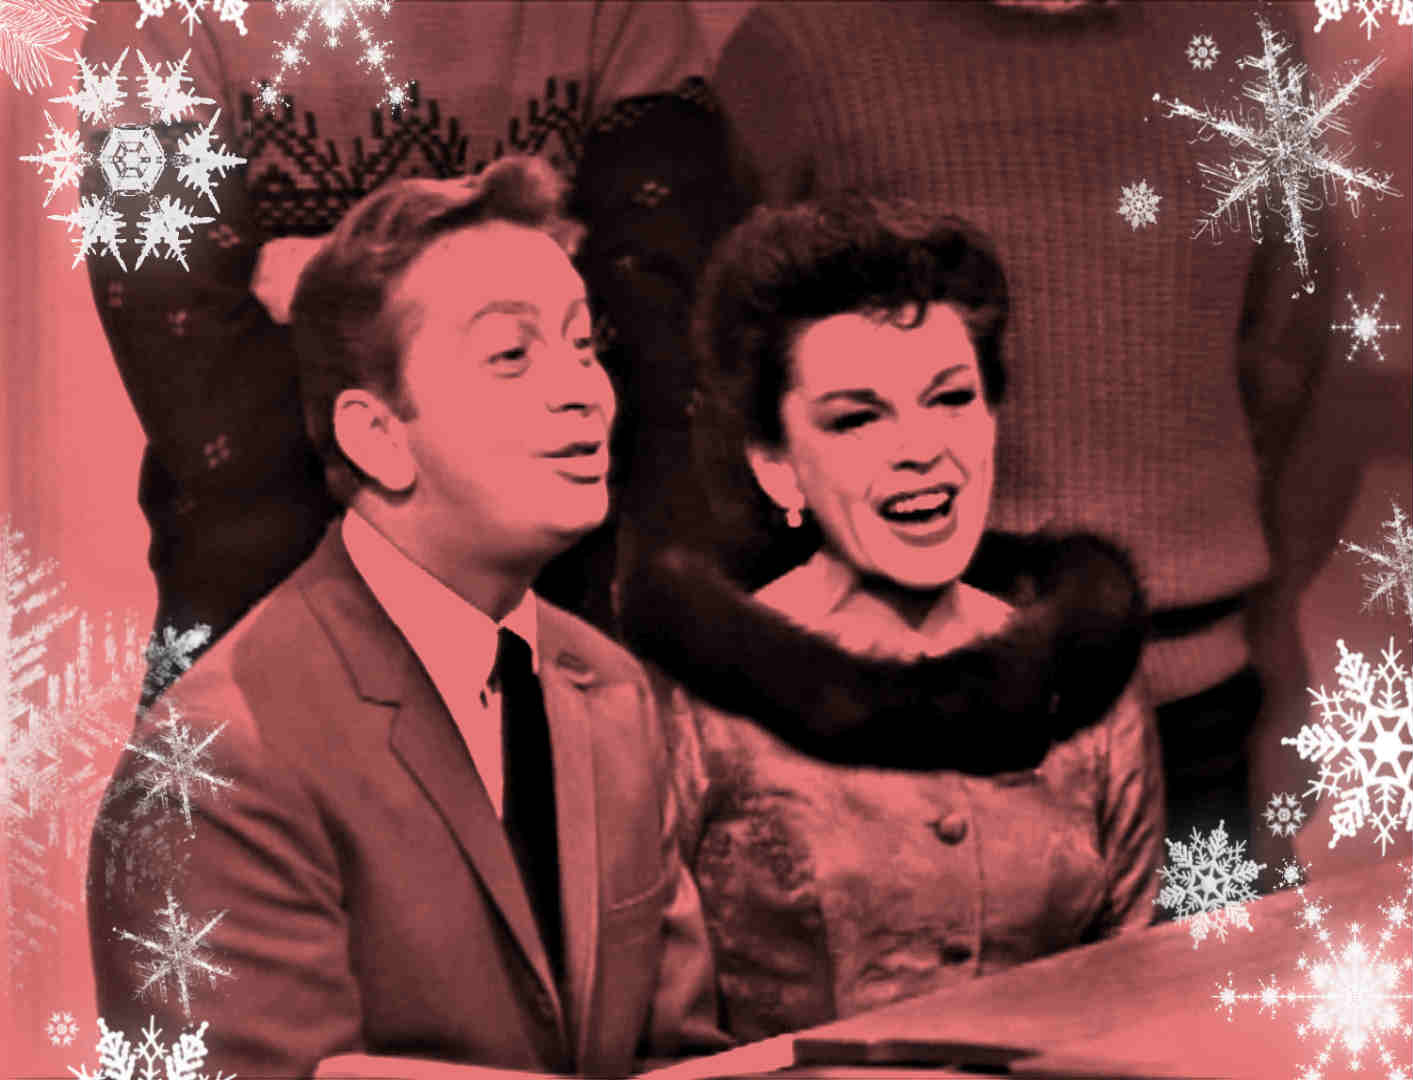 AiC 2012 - Dec. 7 - Judy Garland and Mel Torme - The Christmas Song ...